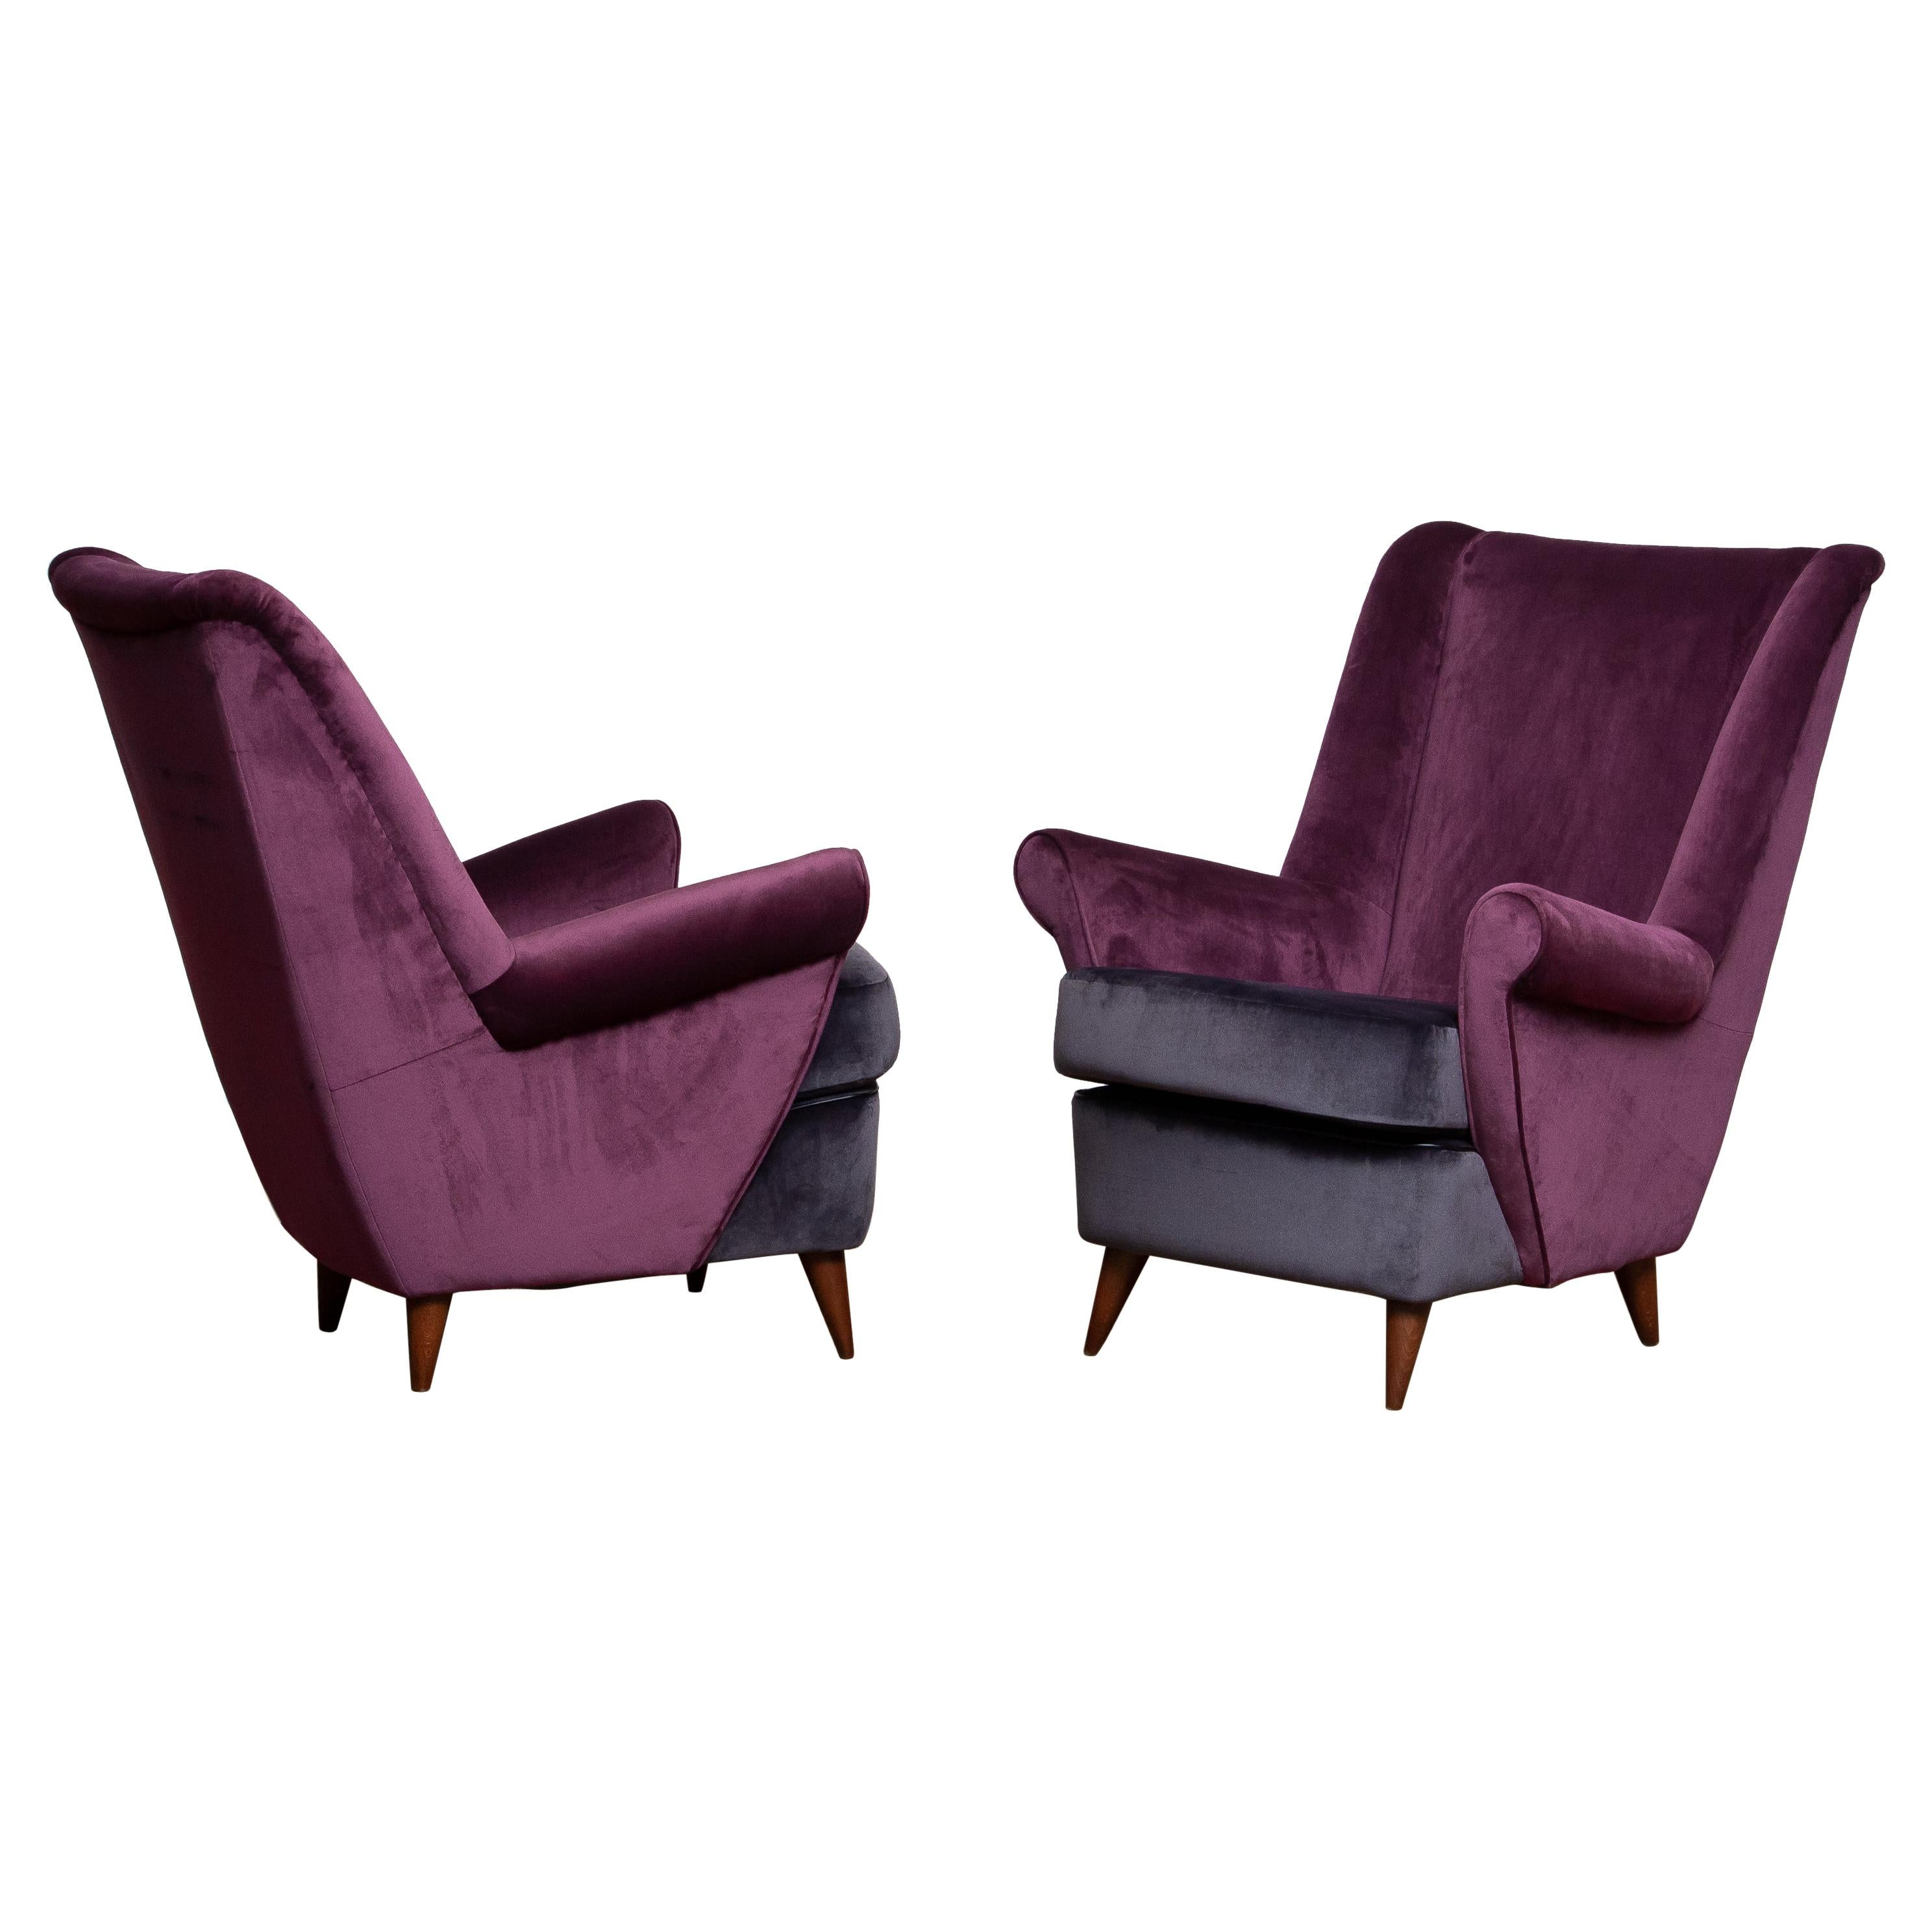 1950's Pair of Lounge / Easy Chairs Designed Gio Ponti Made by ISA Bergamo Italy